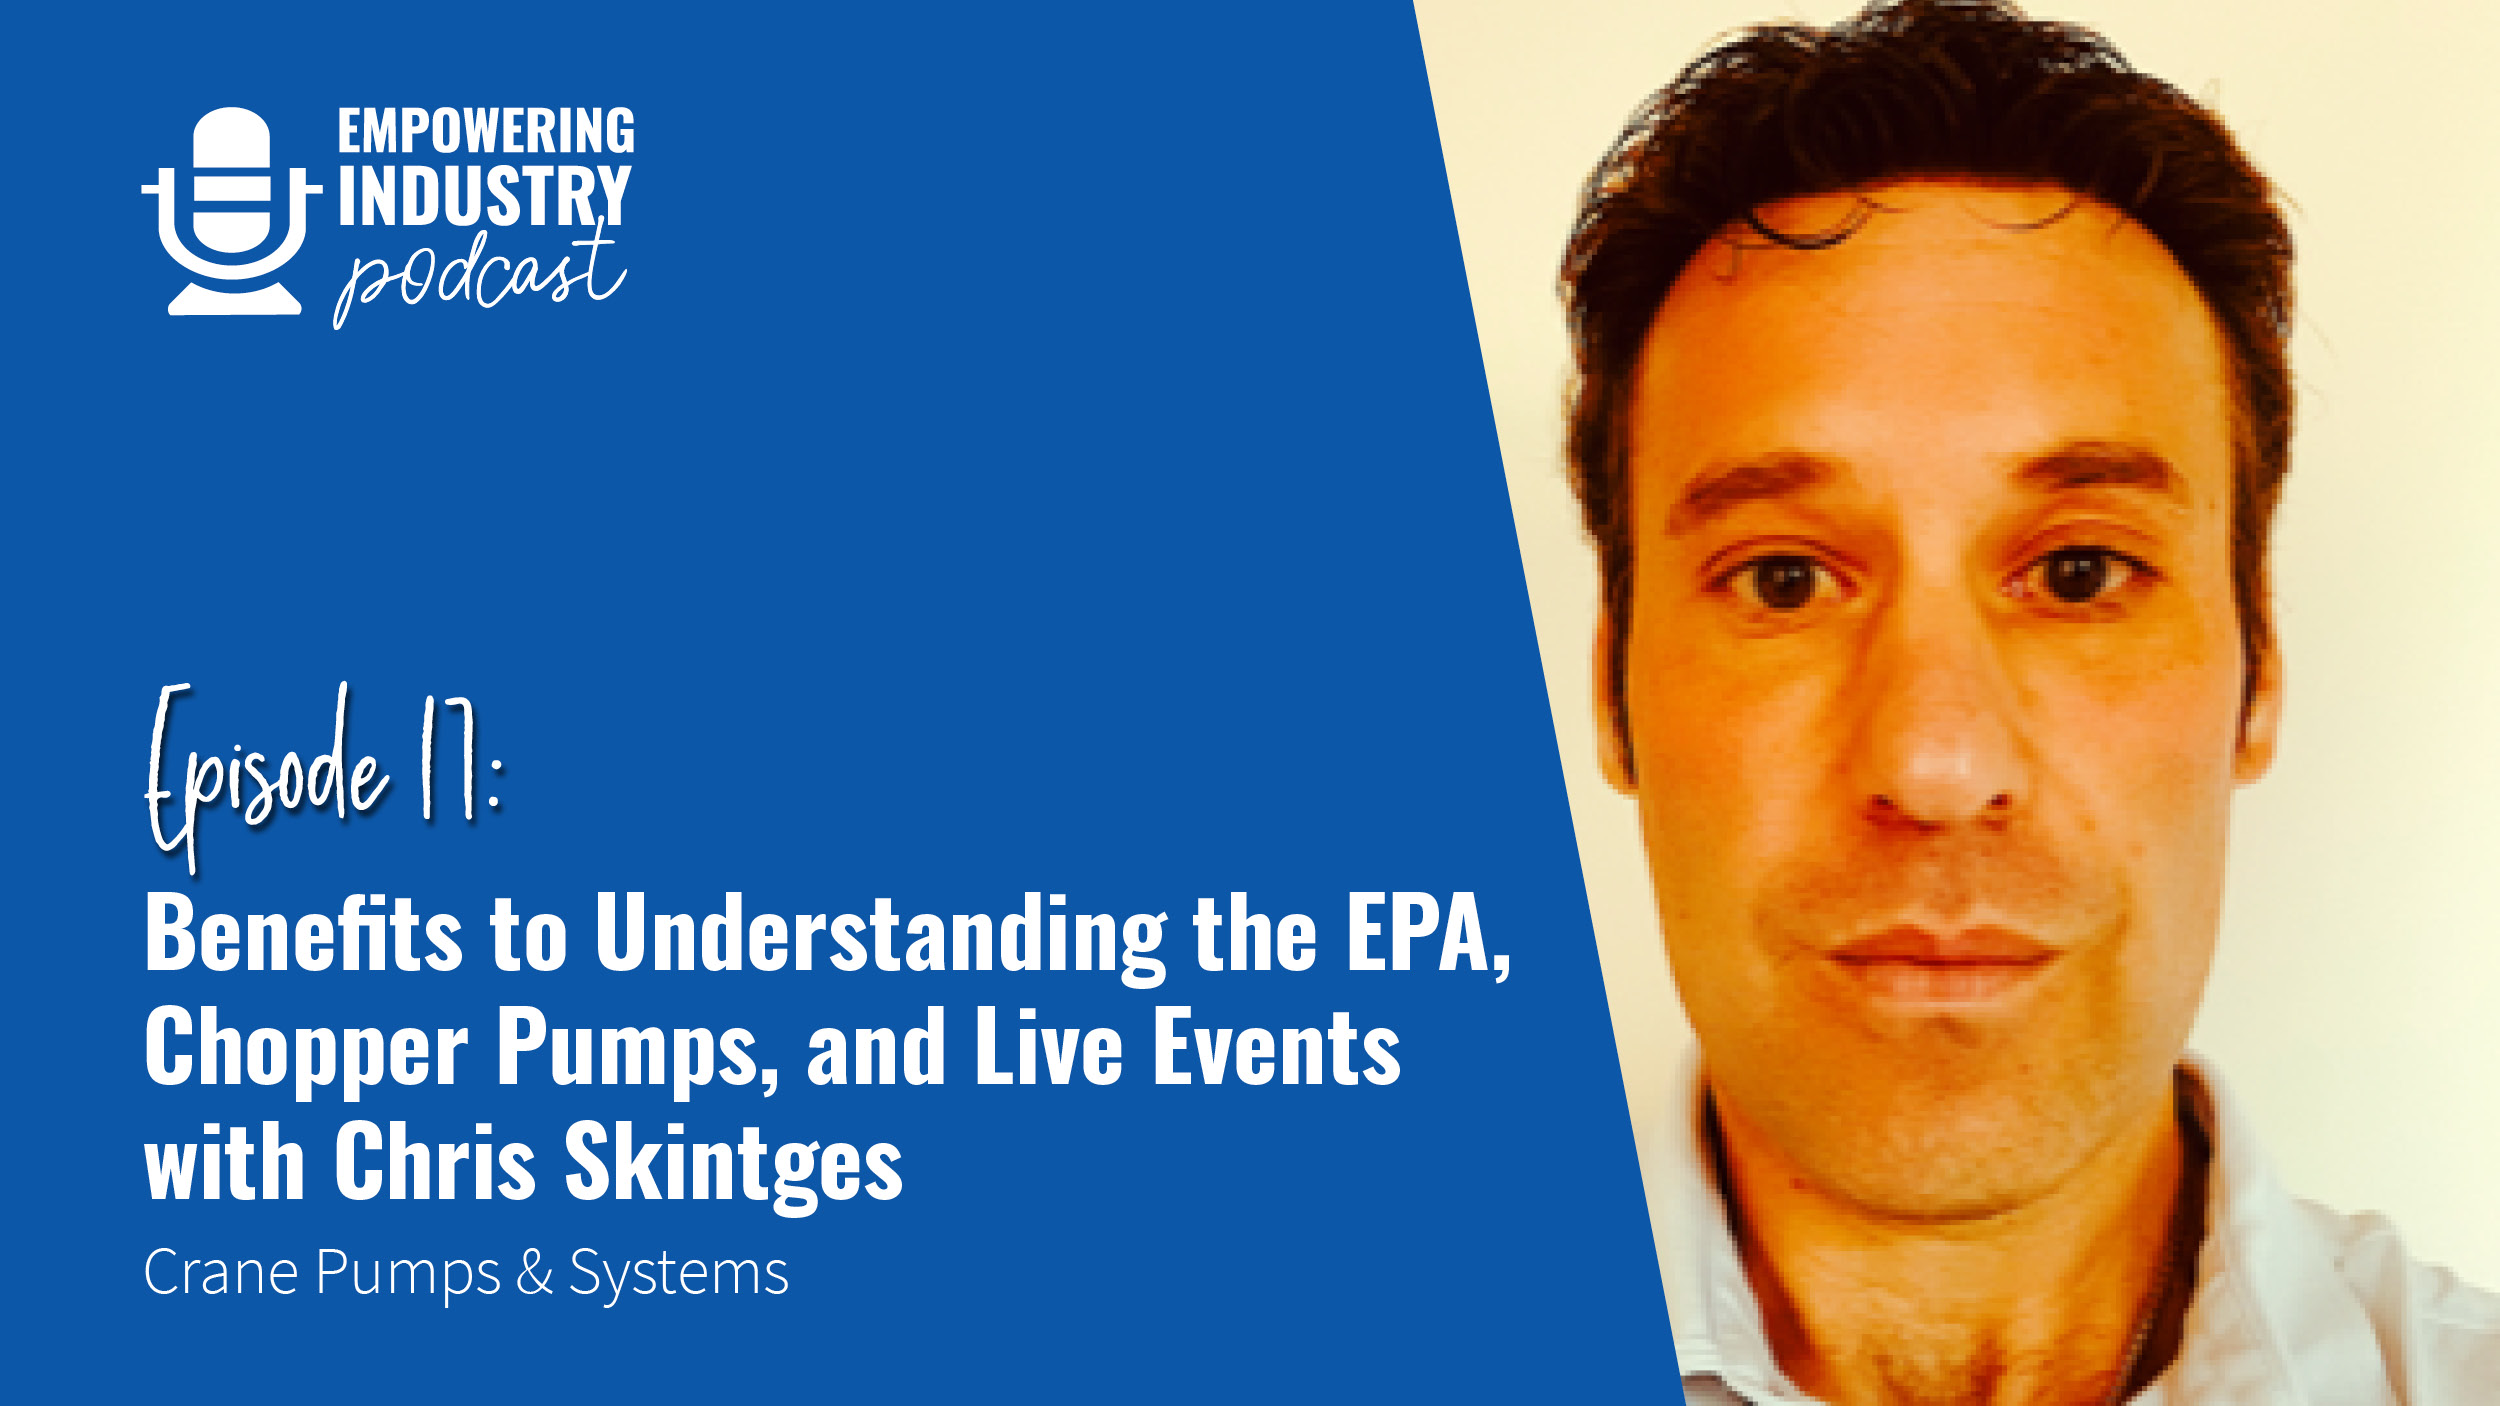 Benefits to Understand the EPA with Chris Skintges